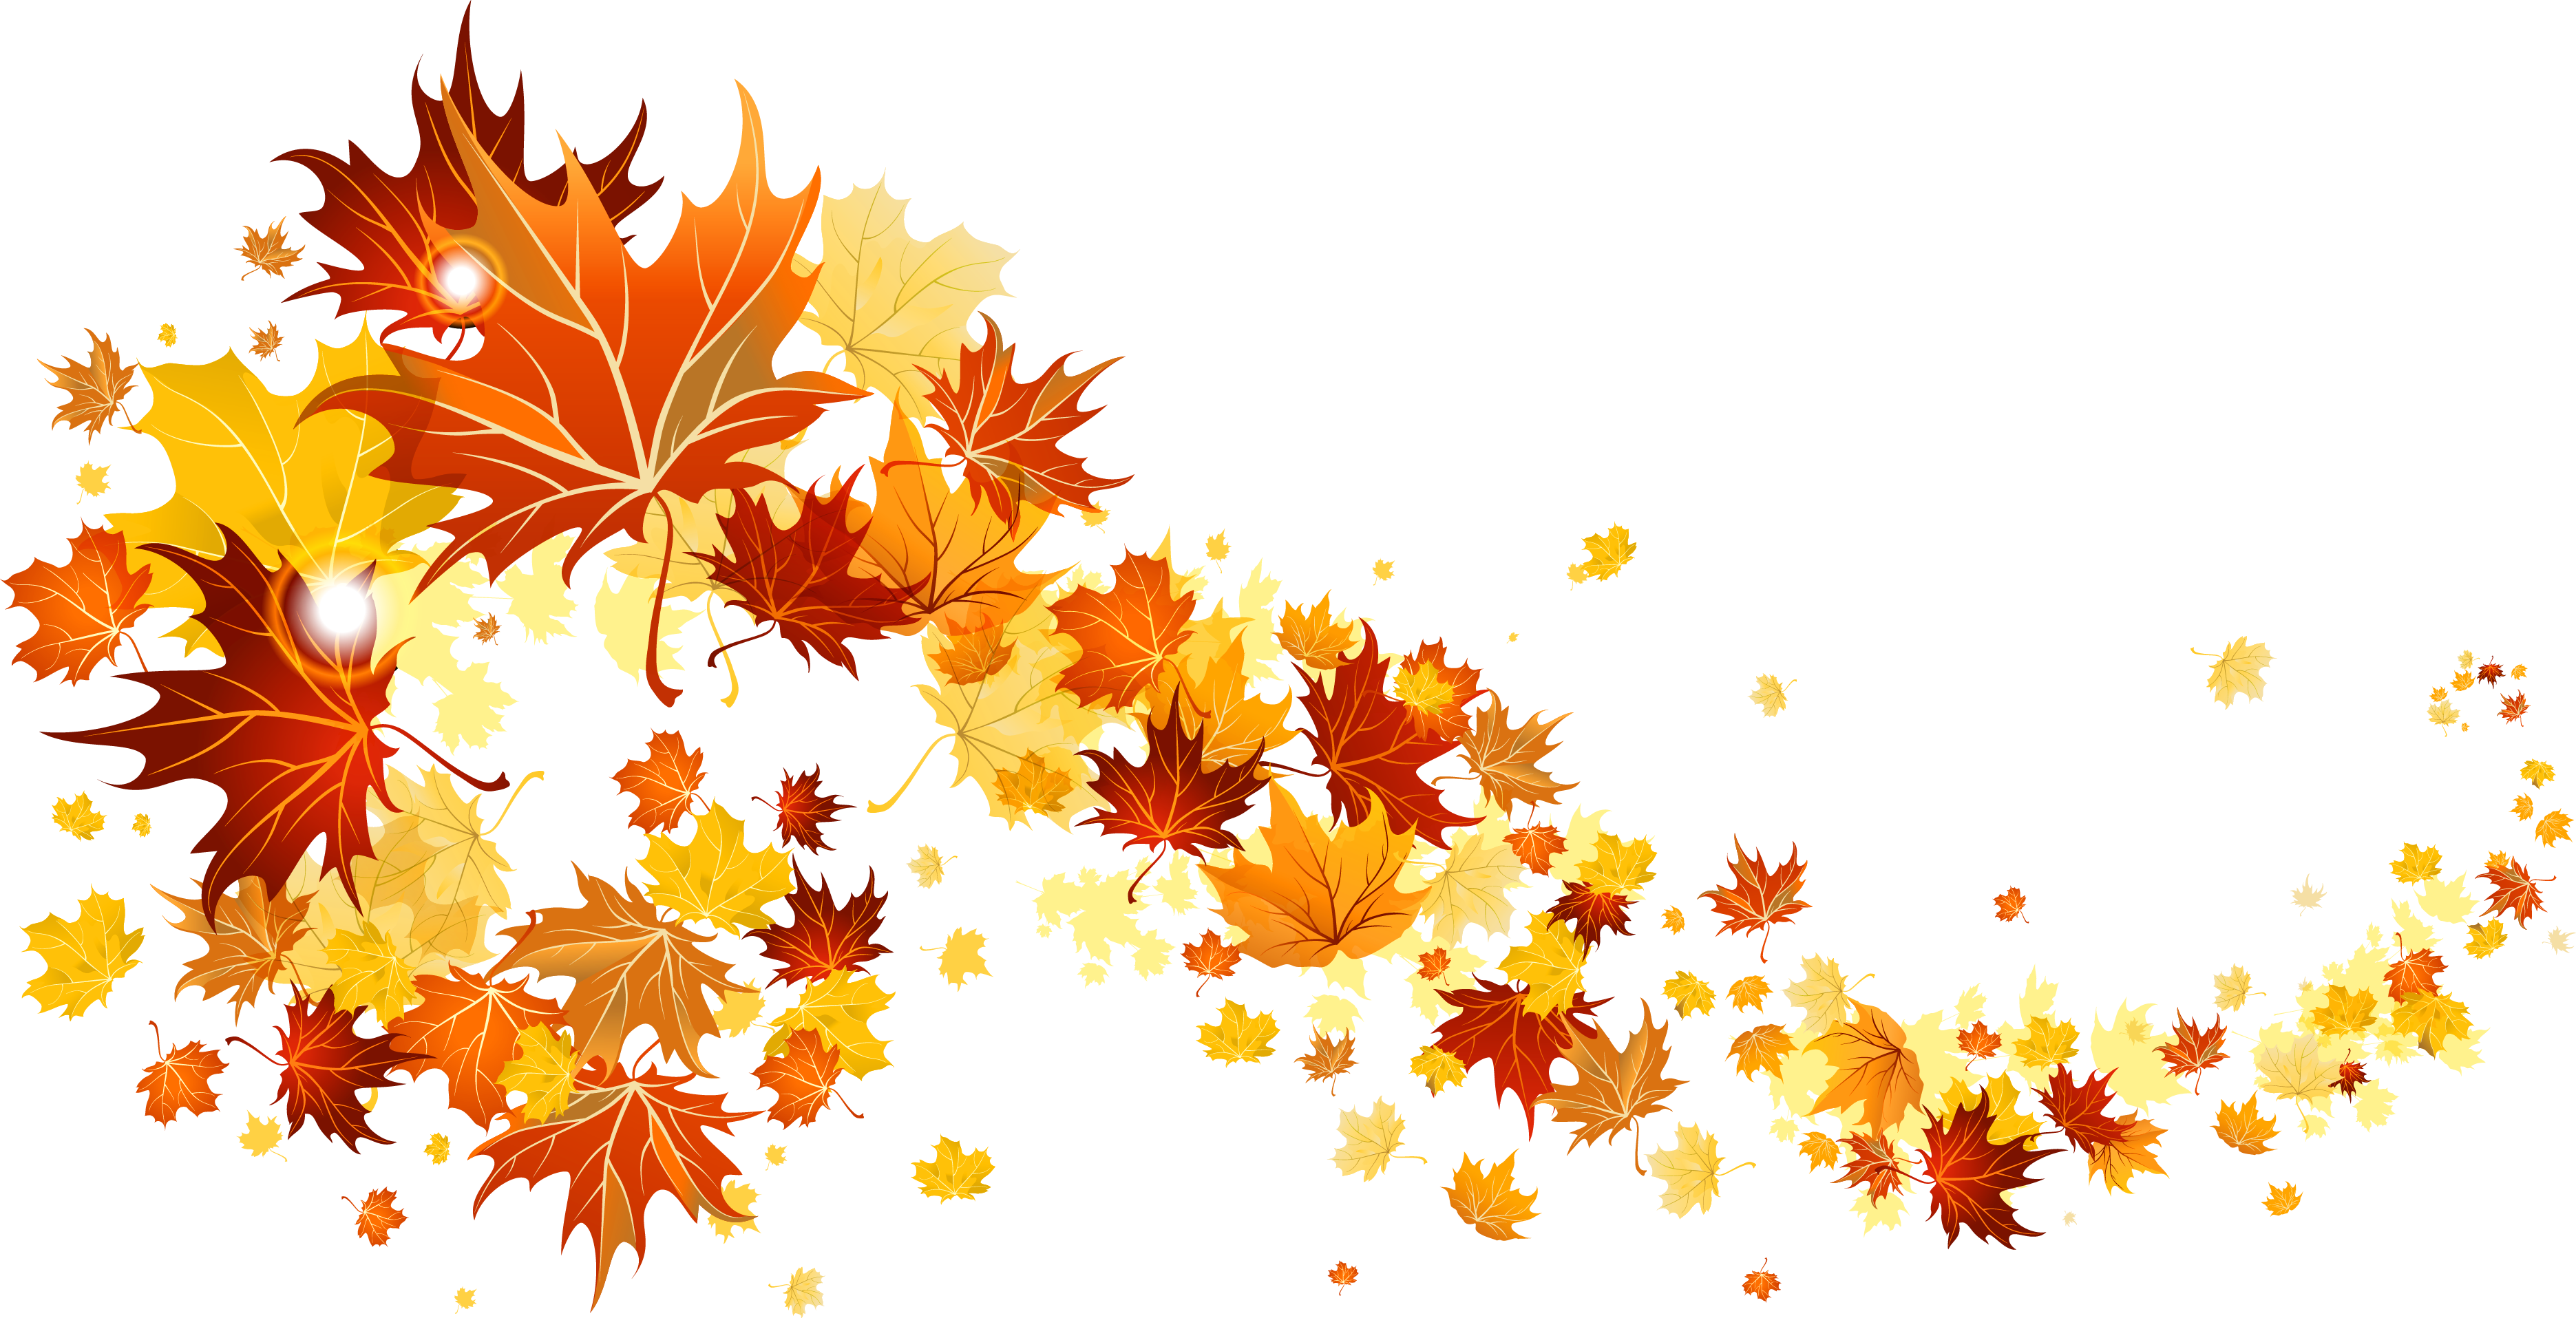 Fall Images Png - Fall Leaves Transparent Picture | Gallery Yopriceville - High ...